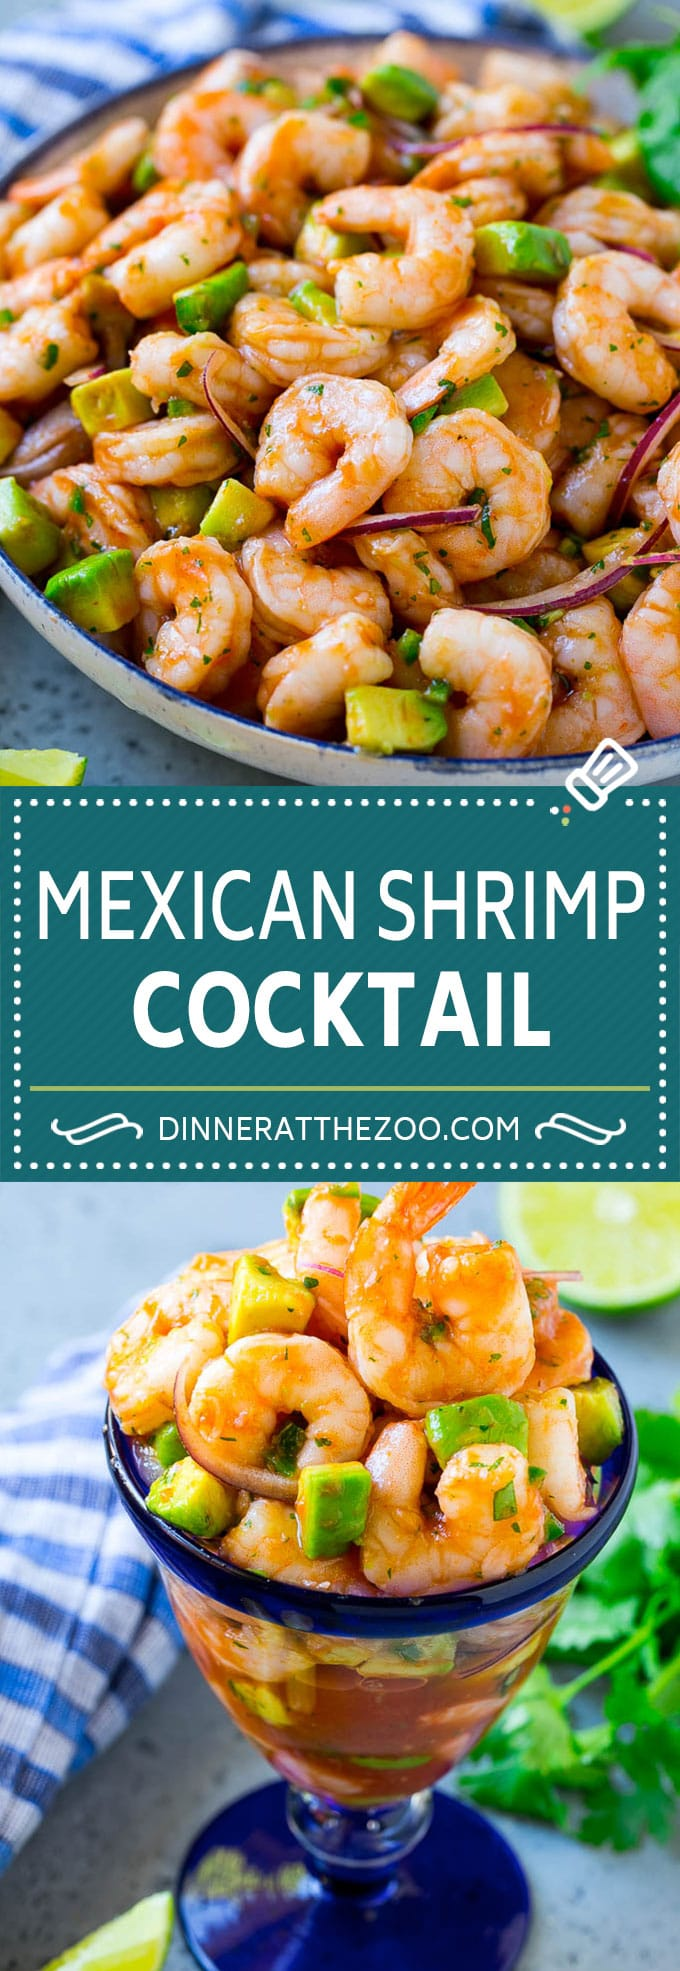 Mexican Shrimp Cocktail Recipe | Coctel de Camarones | Shrimp Cocktail | Mexican Shrimp #shrimp #appetizer #avocado #mexican #dinneratthezoo